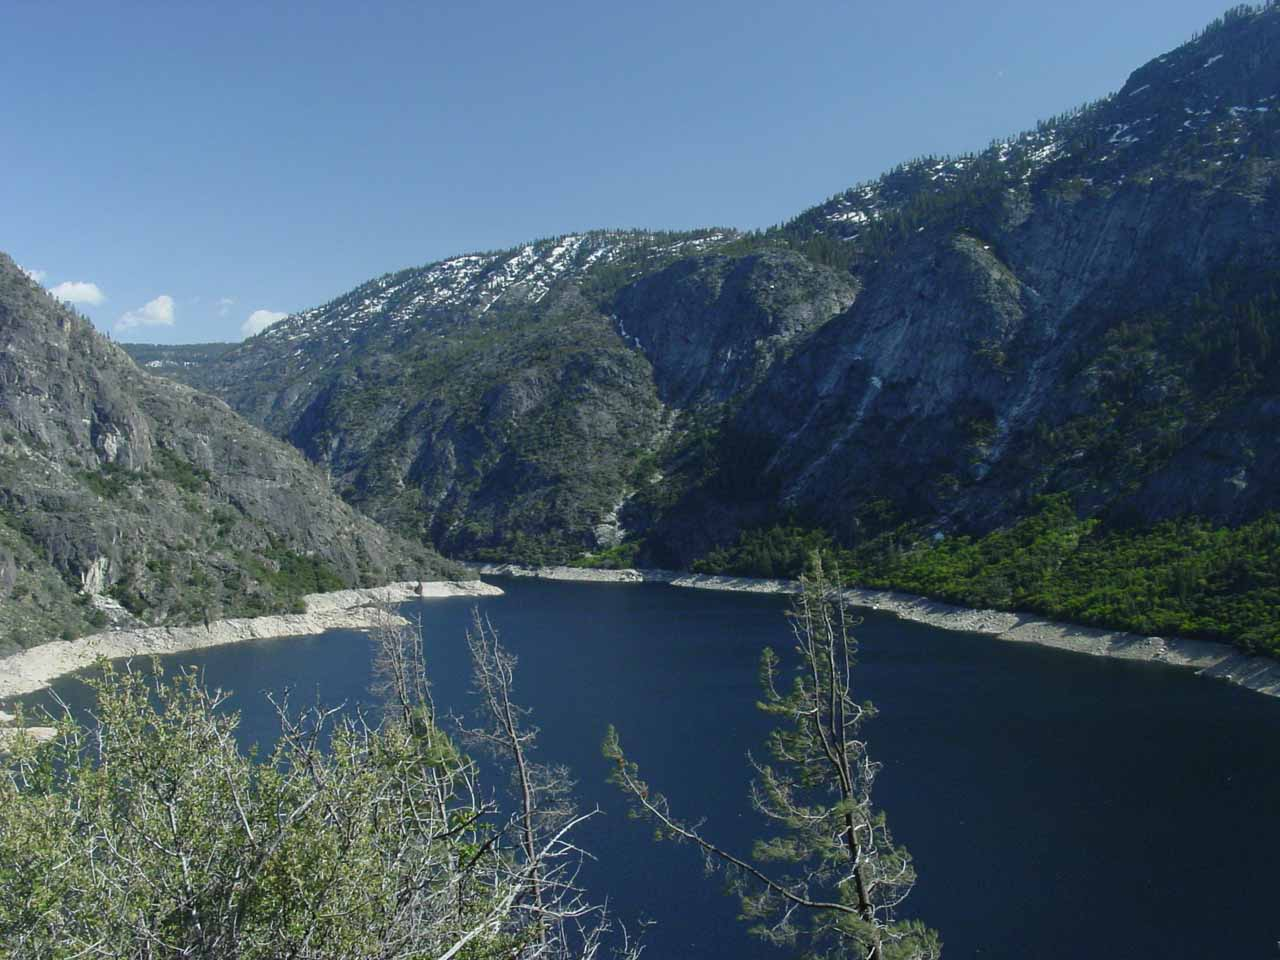 The manmade lake towards the head of Hetch Hetchy